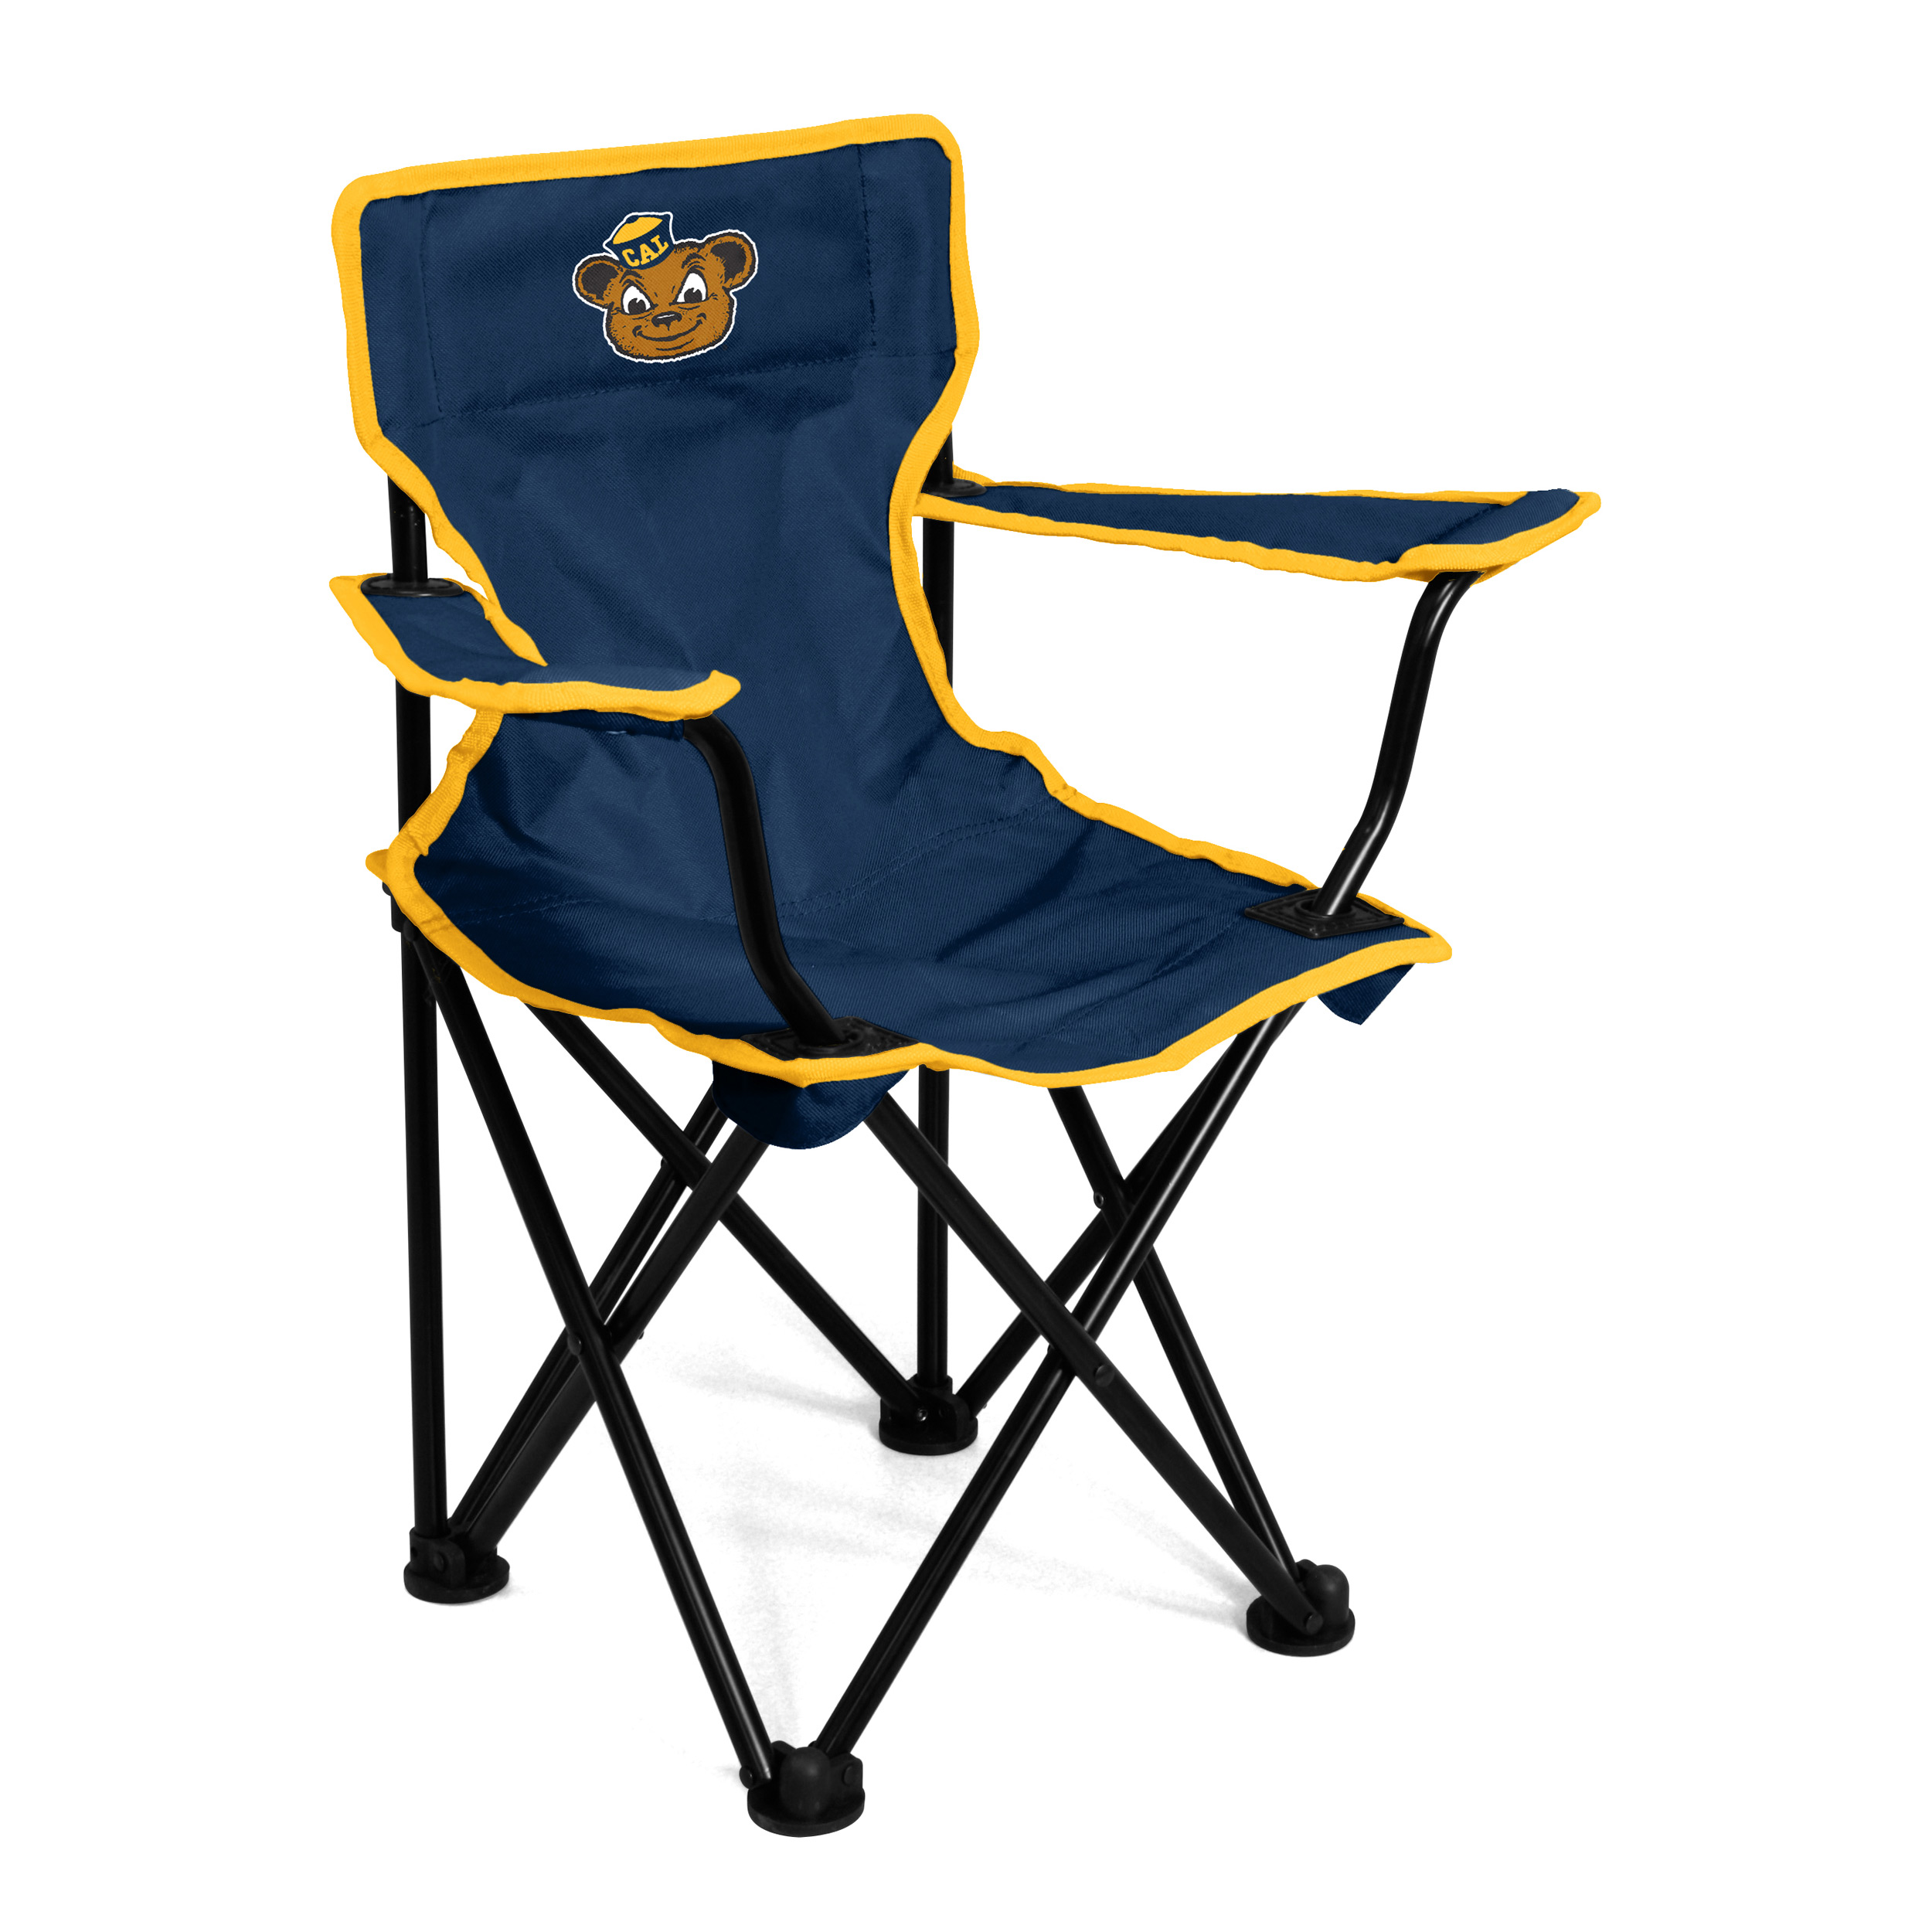 University of California Berkeley Toddler Chair